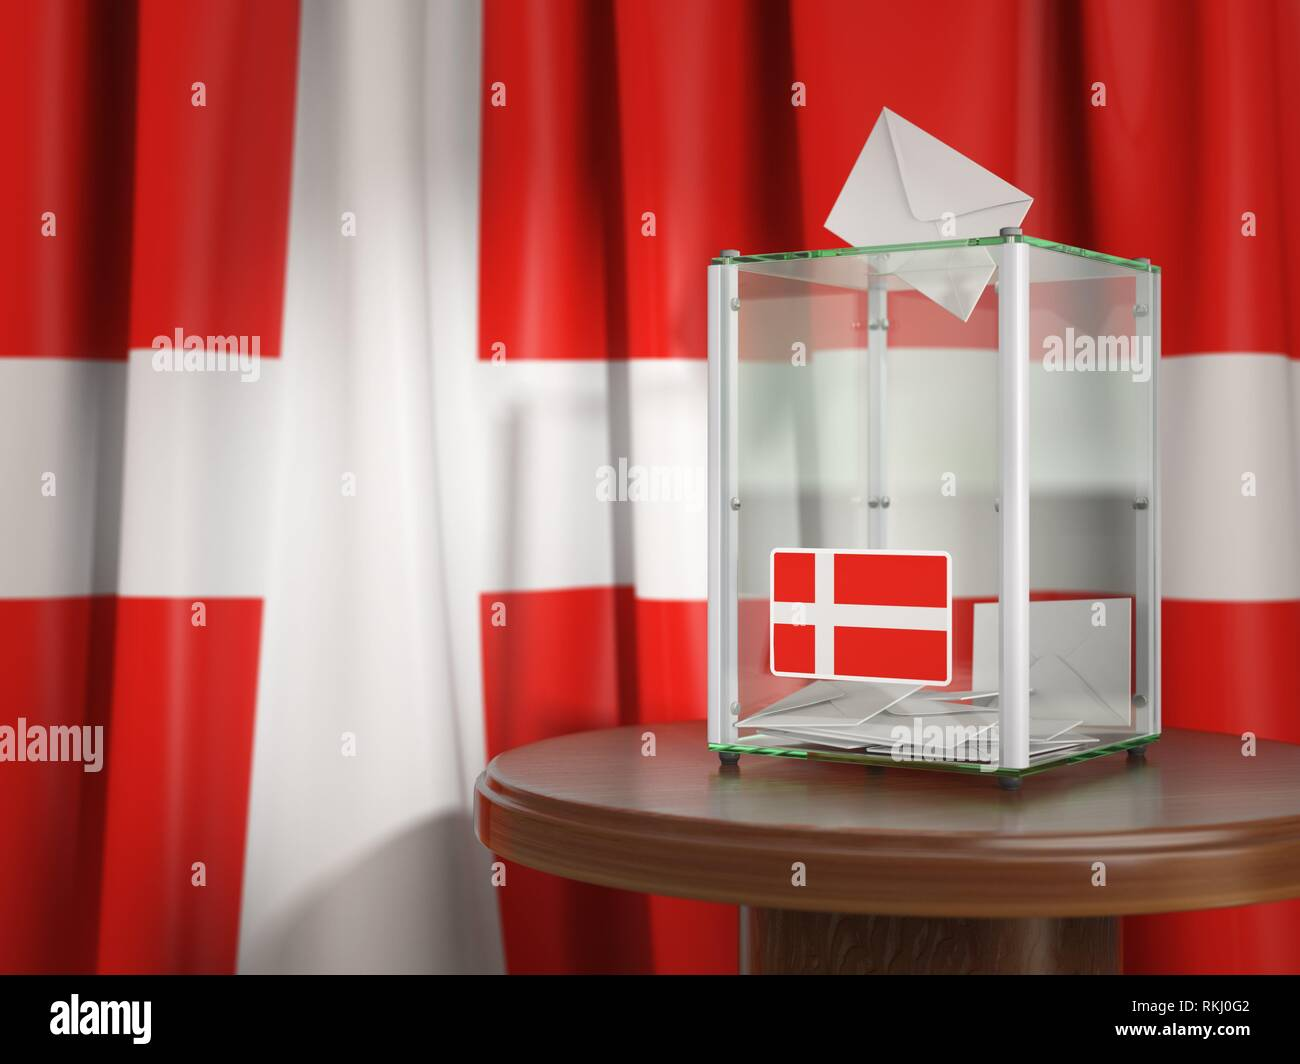 Ballot box with flag of Denmark and voting papers. Danish presidential or parliamentary election. 3d illustration. - Stock Image